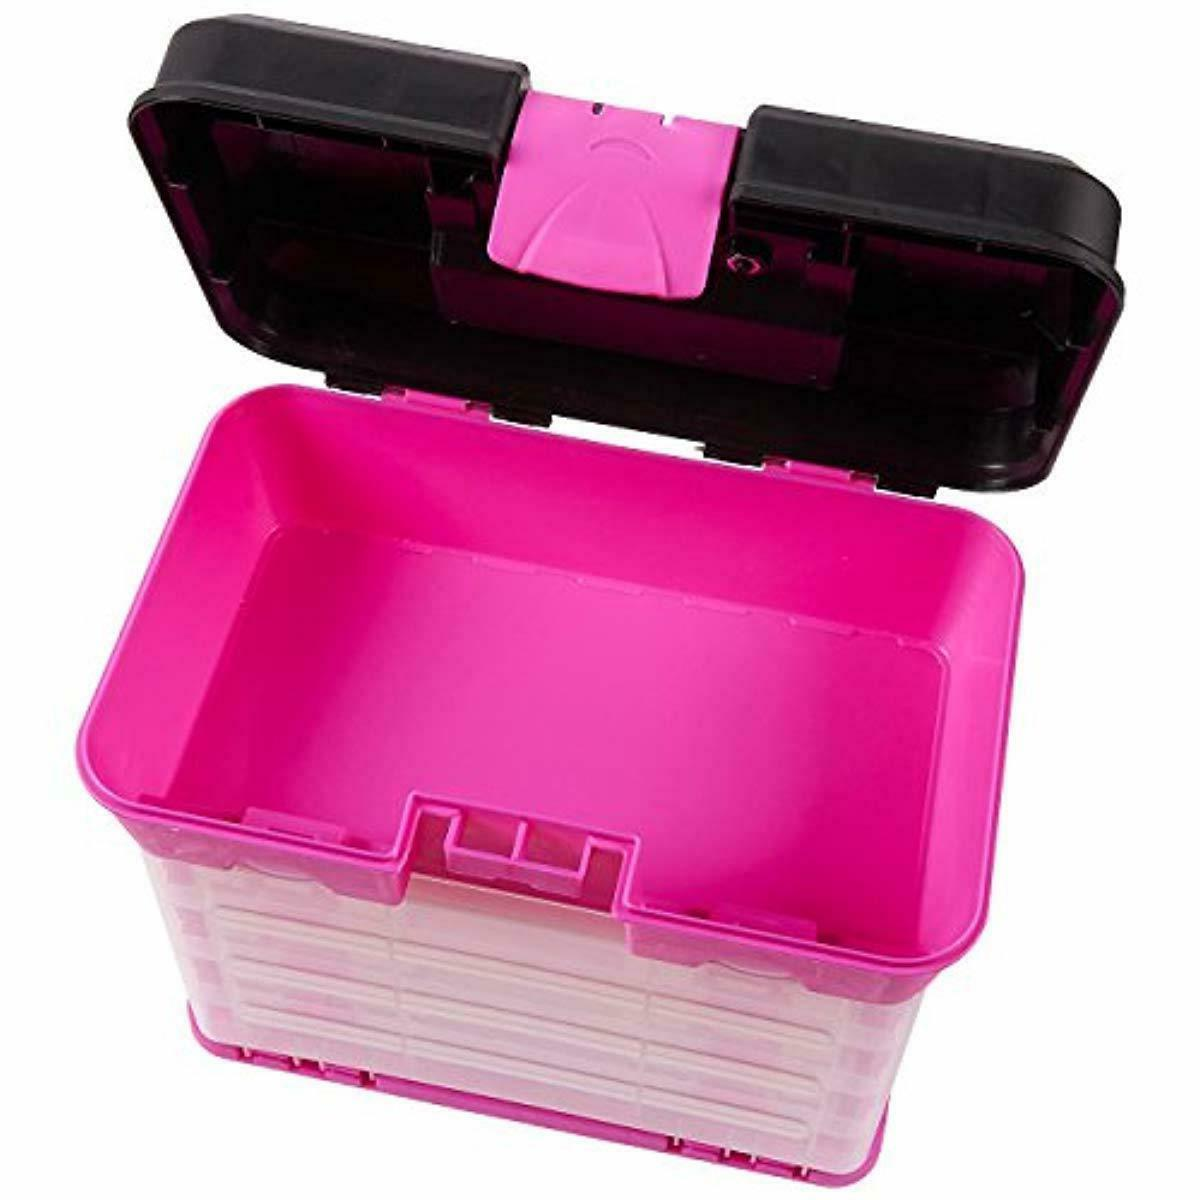 Juvale Tool Organizer Includes Containers Tackle